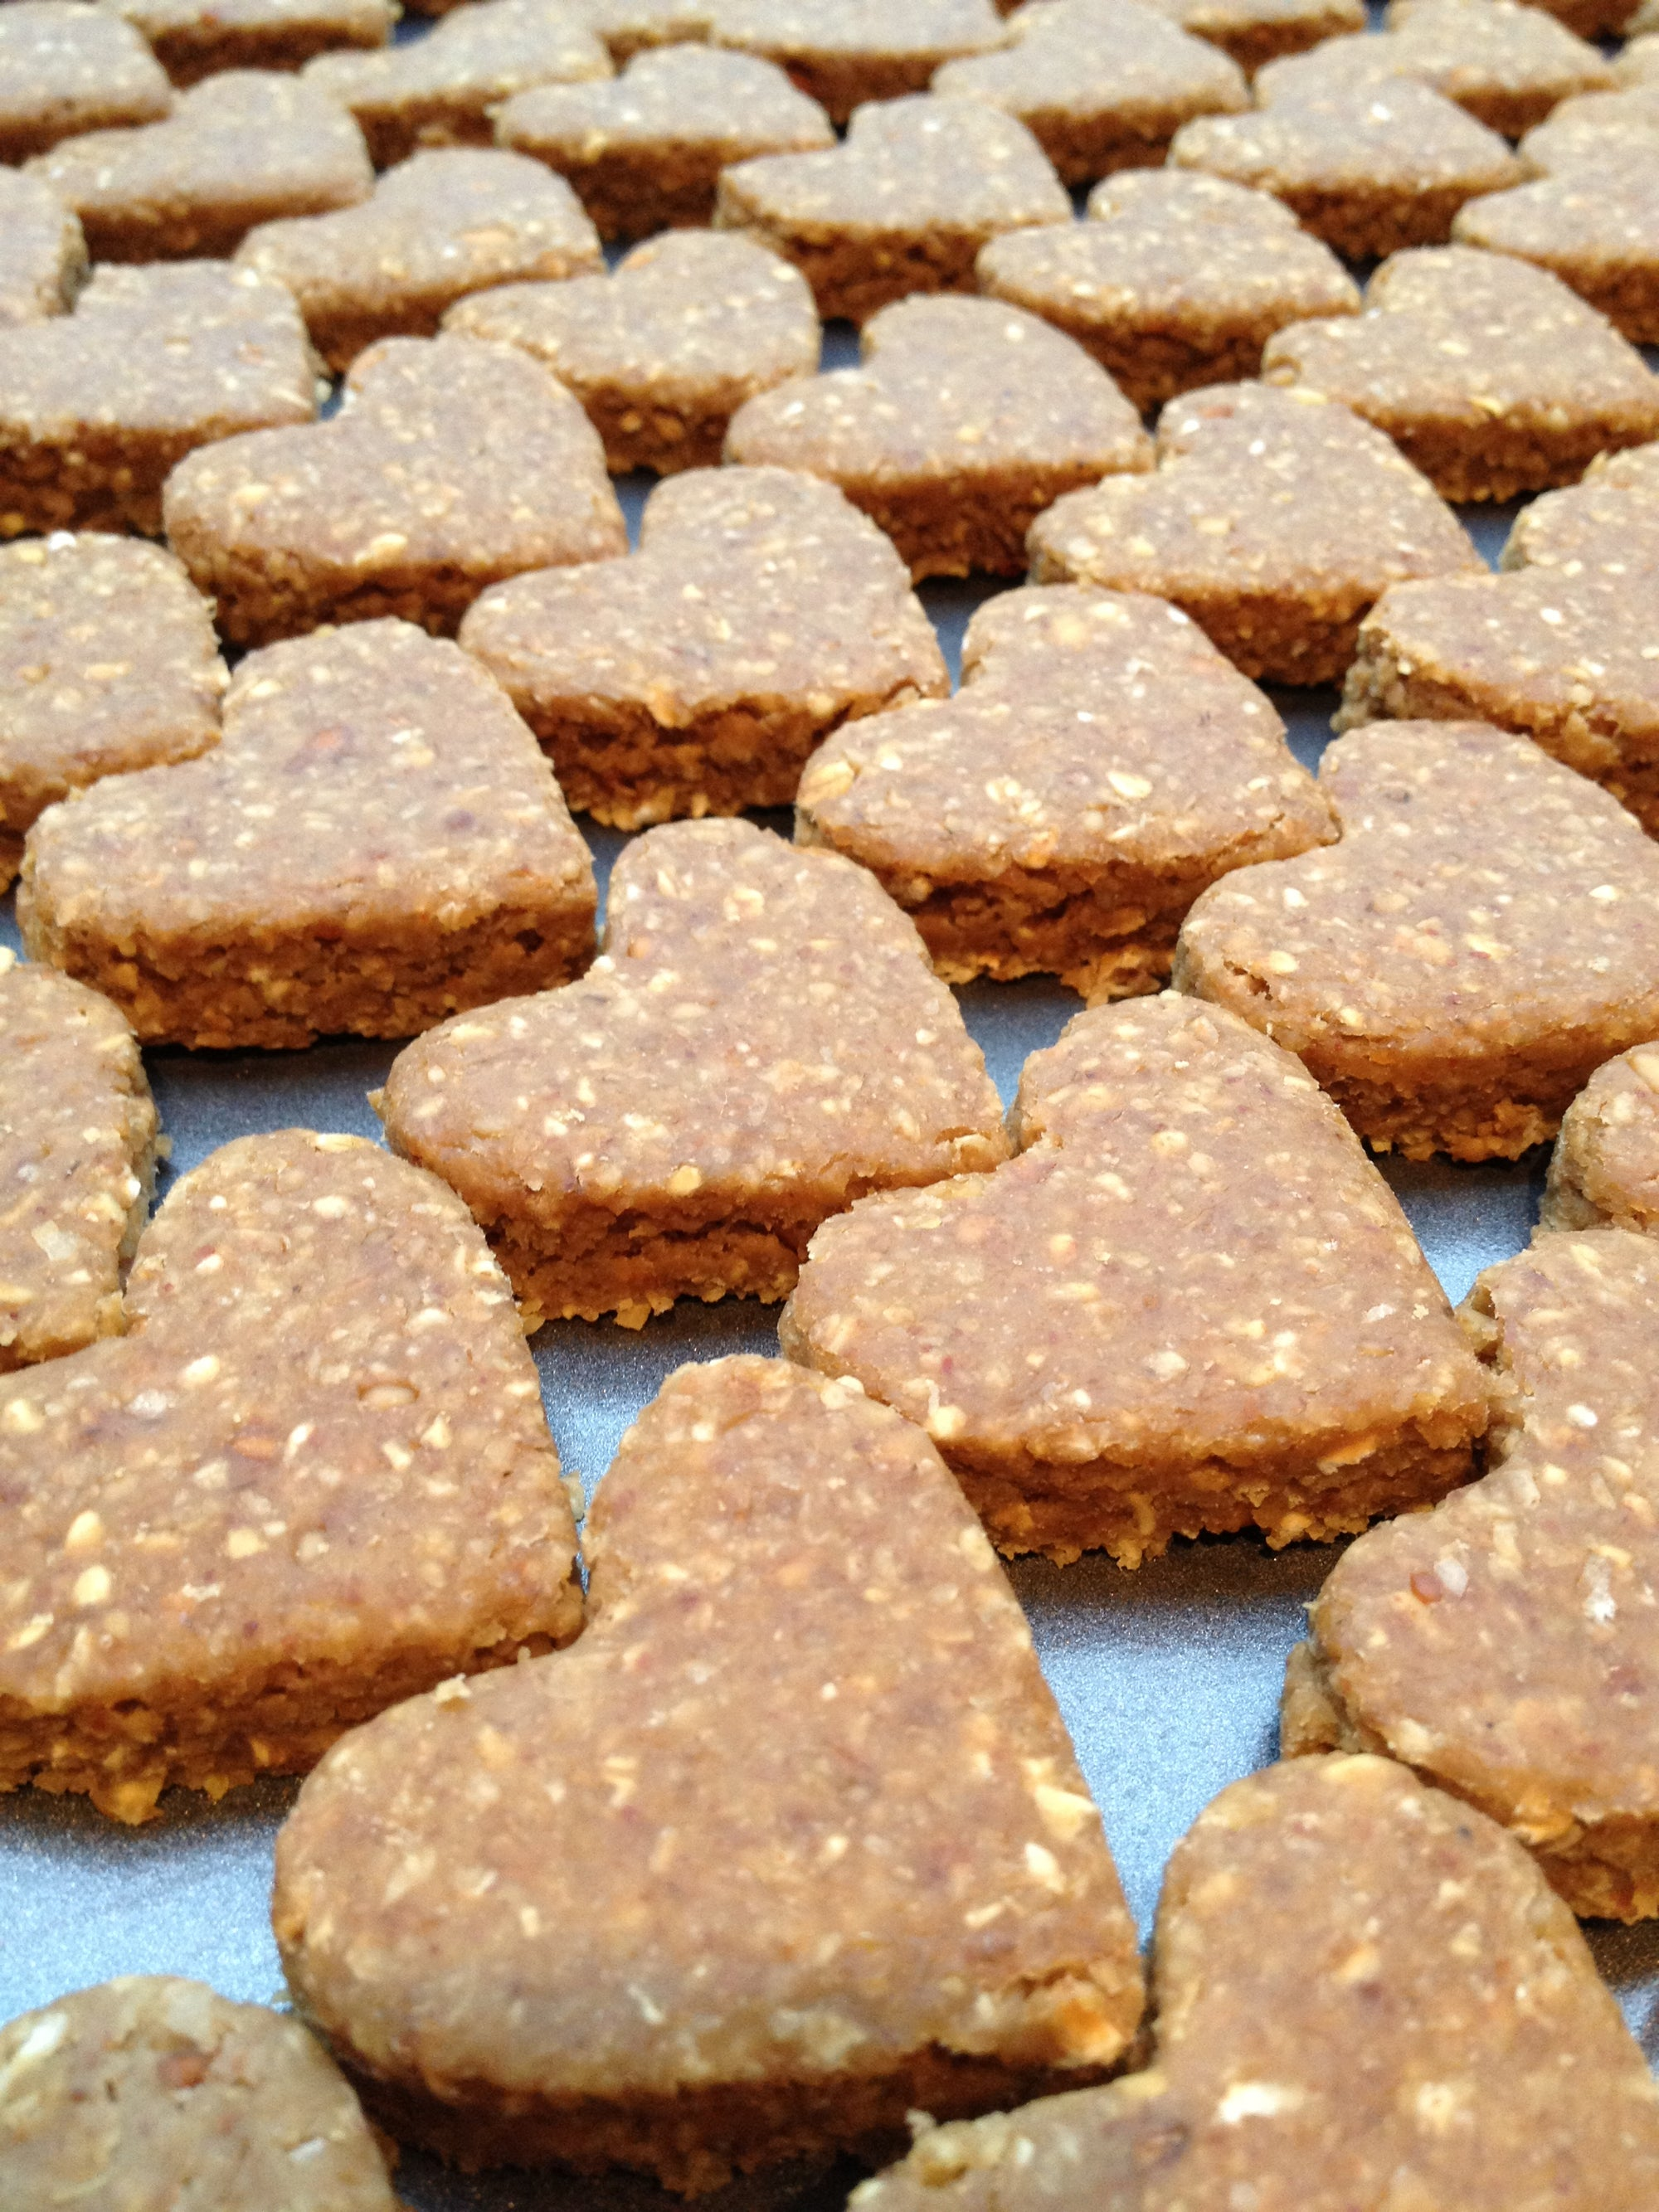 The Little Pet Biscuit Company handmade peanut butter and banana dog biscuits. Natural dog treats. Dog biscuits